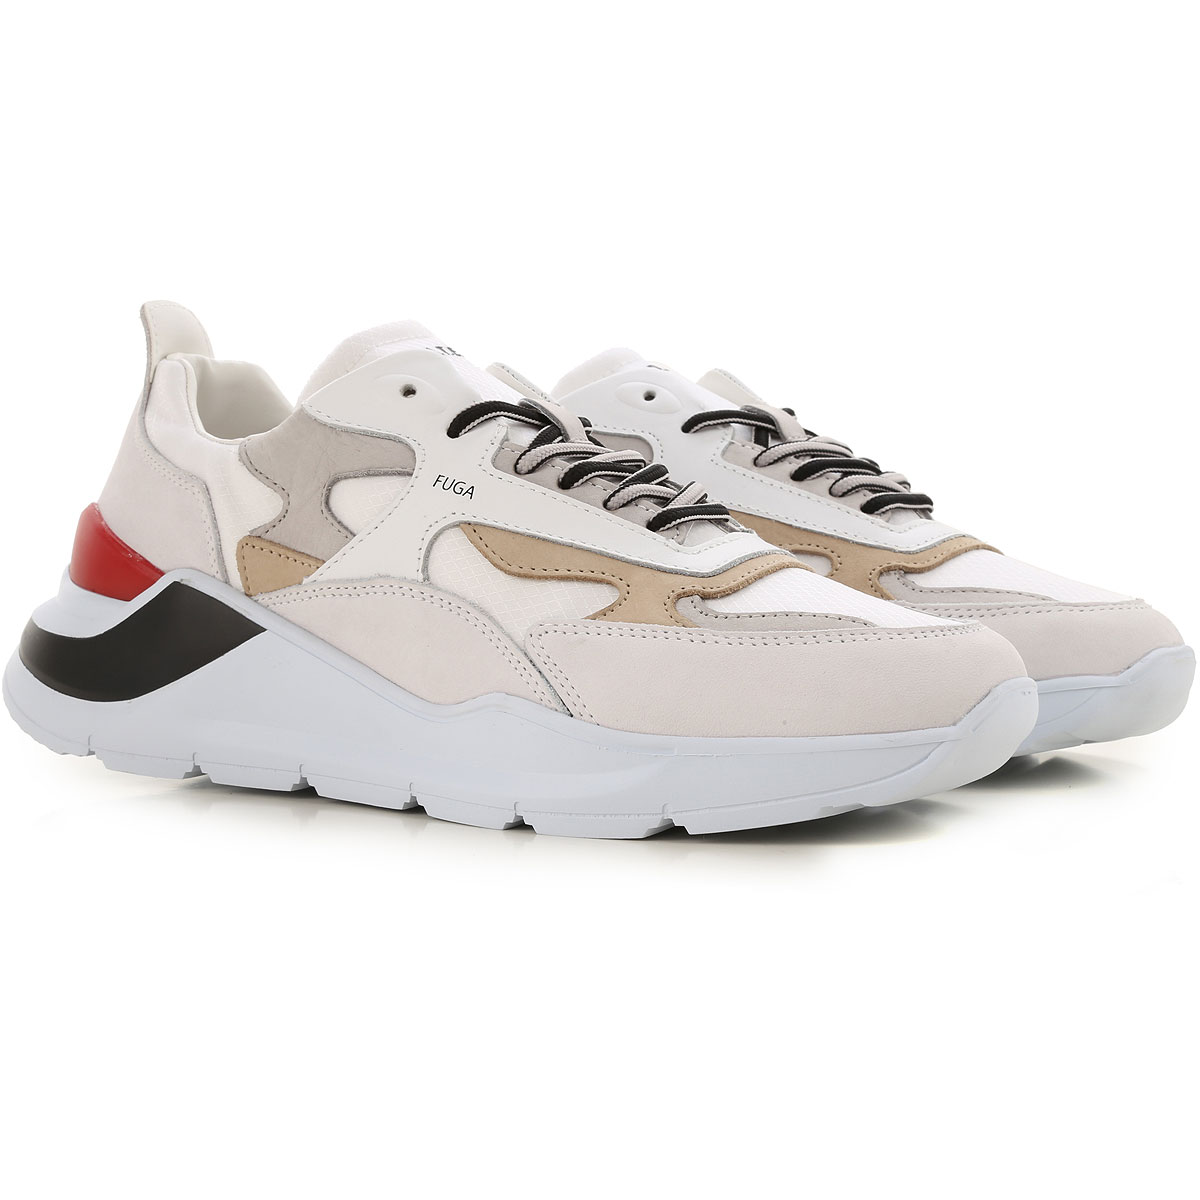 D.A.T.E. Sneakers for Men On Sale, White, Leather, 2019, 8